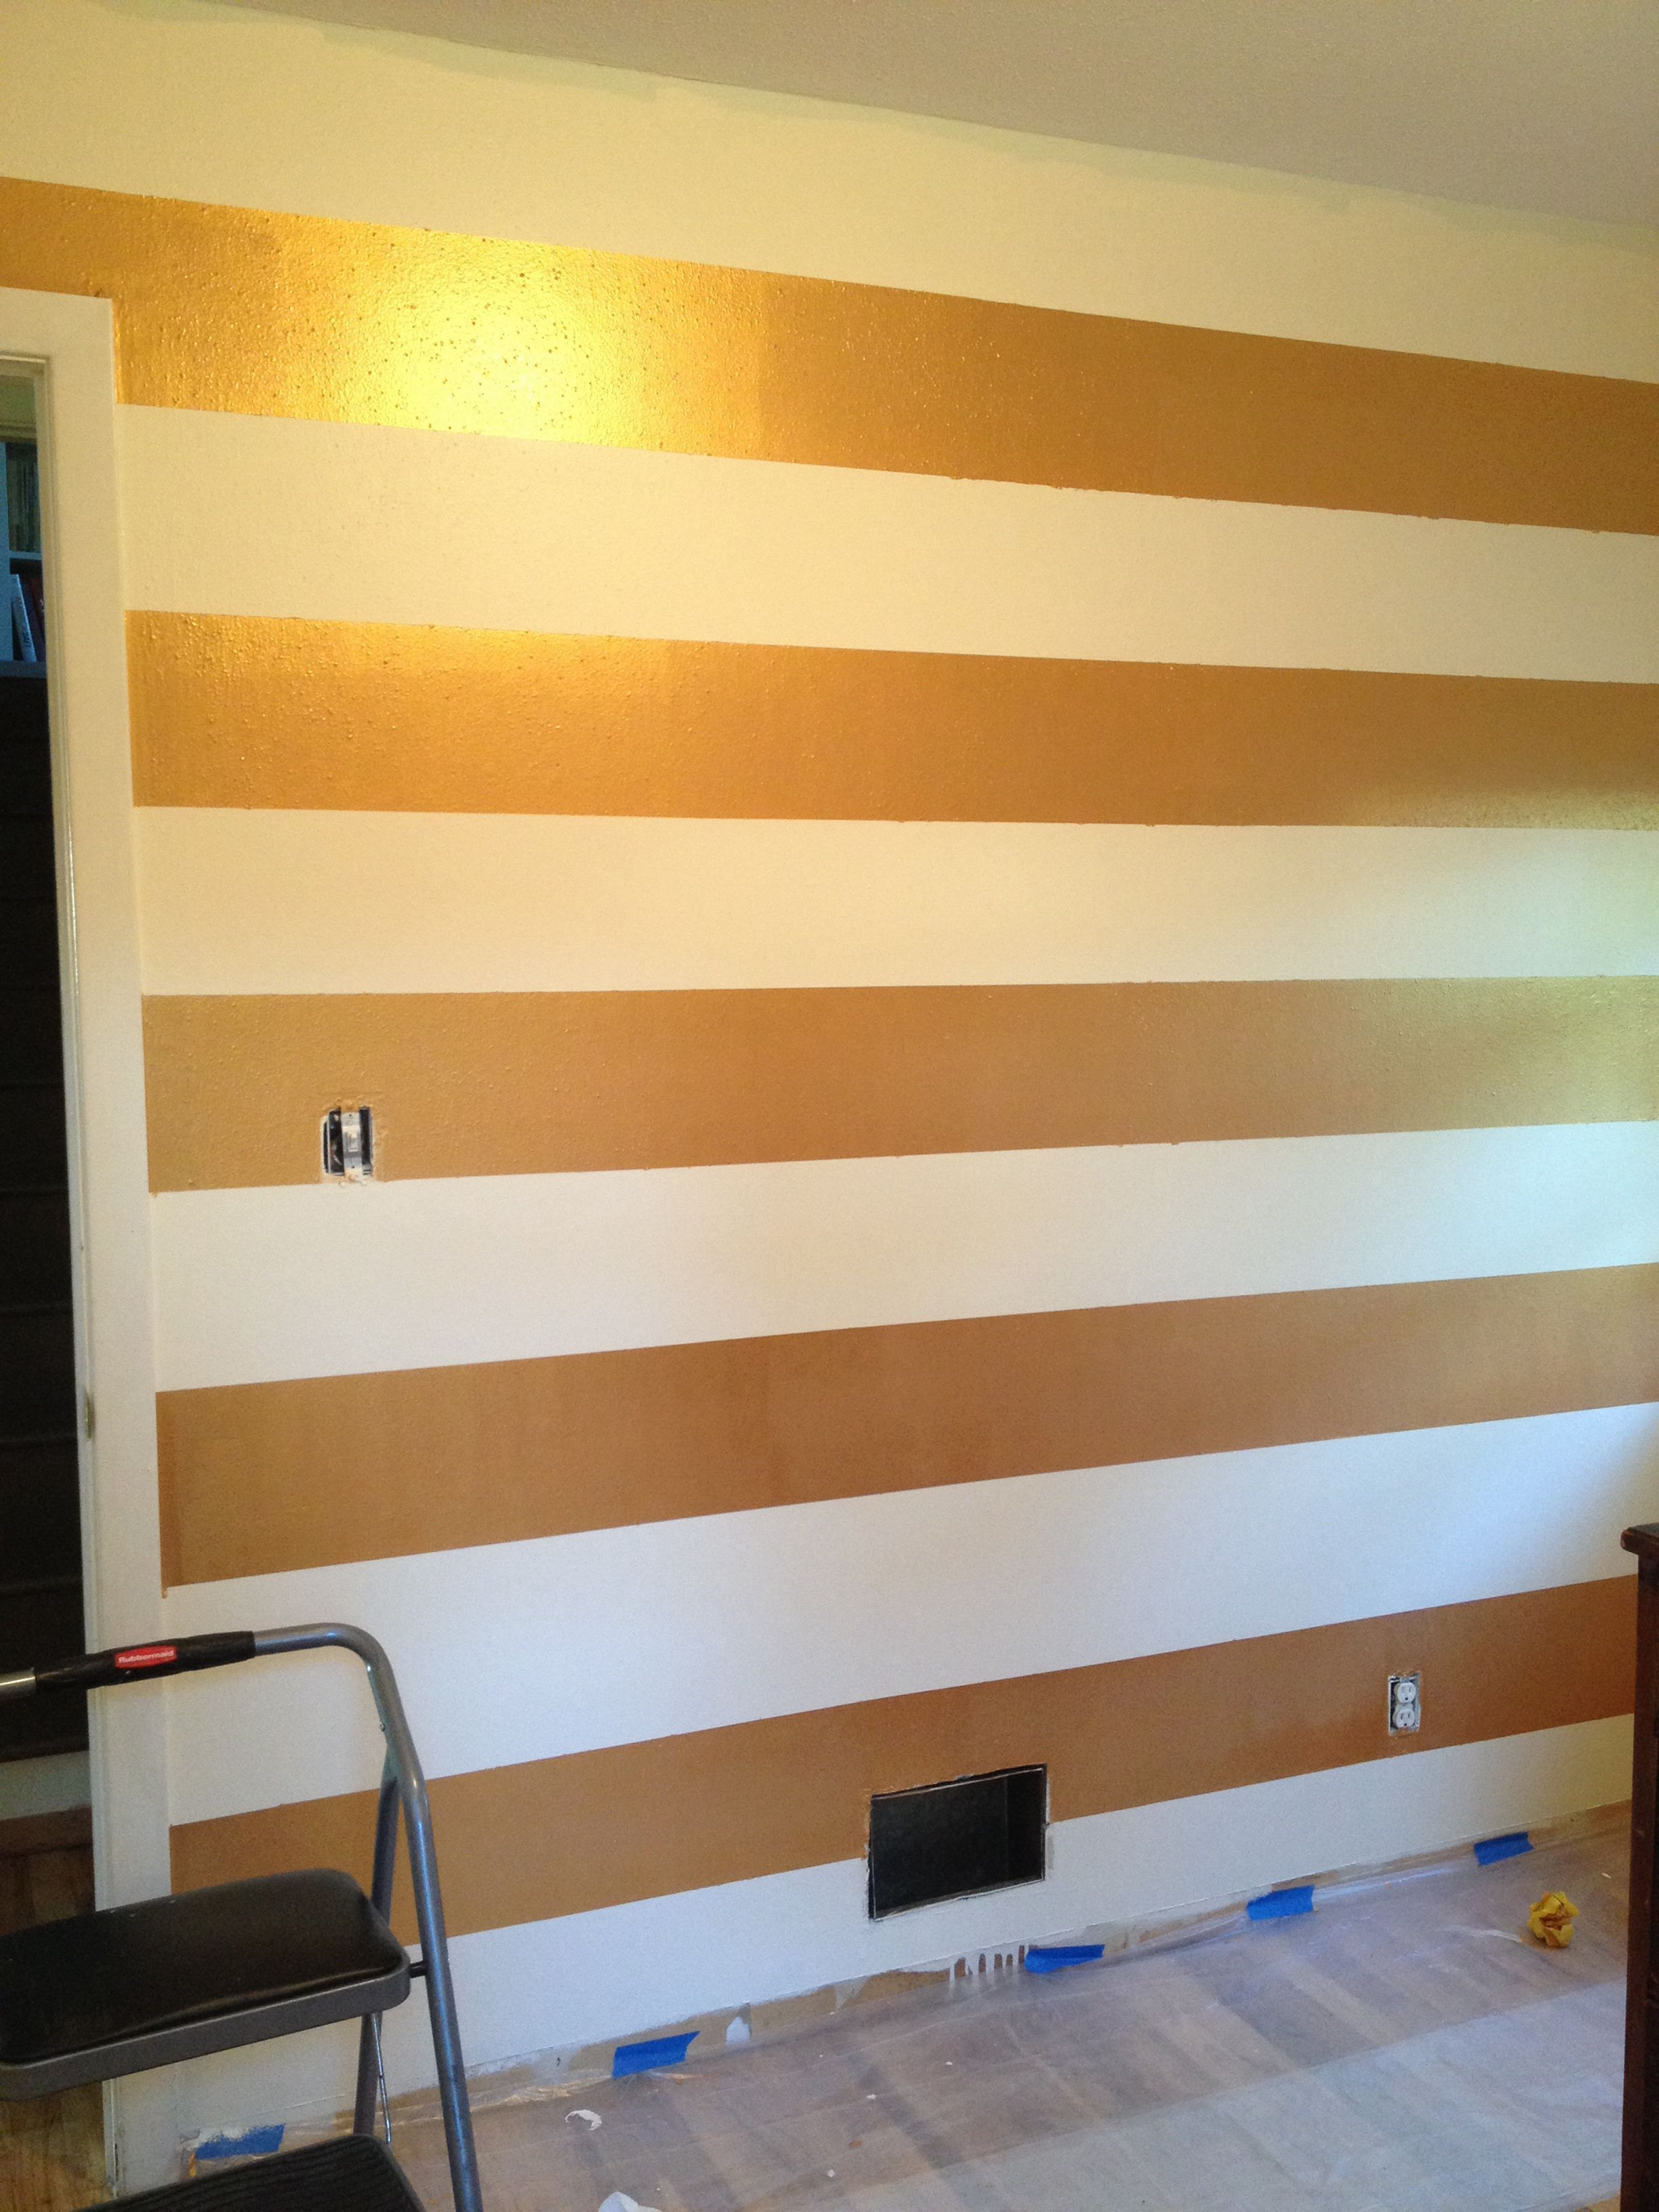 15 Awesome Striped Painted Wall Design and Decorating Ideas to Make ...